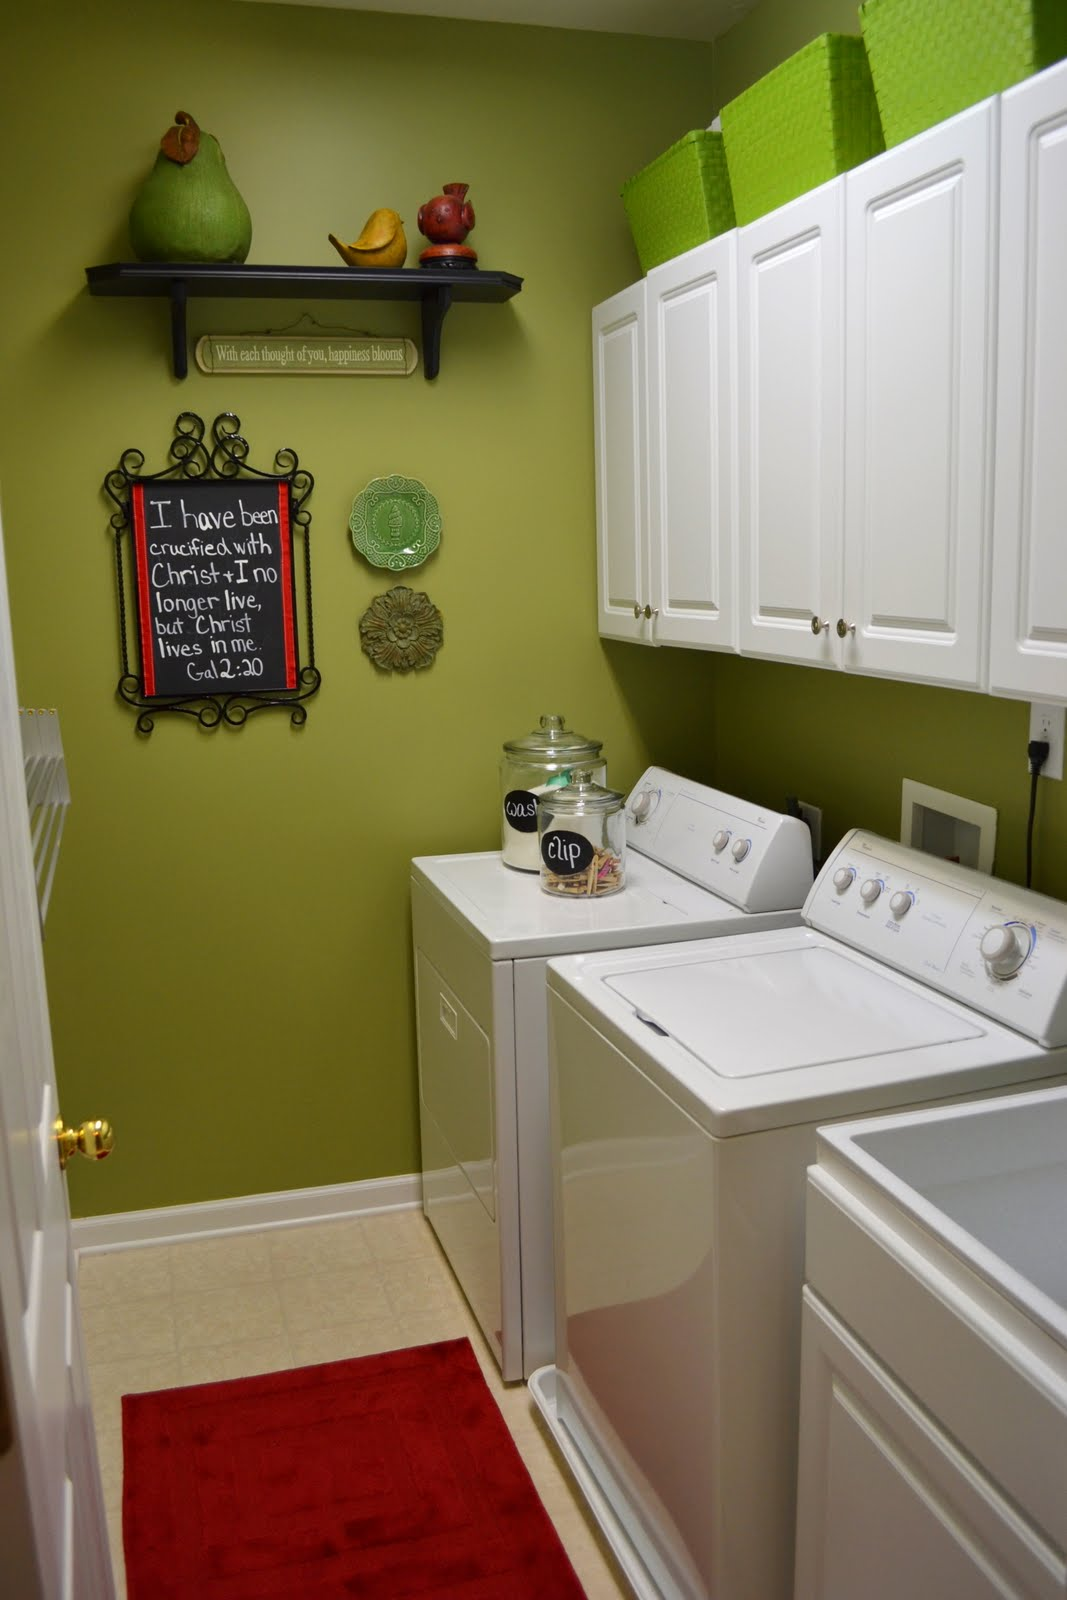 House tour the laundry room worthing court - Laundry room small space ideas paint ...